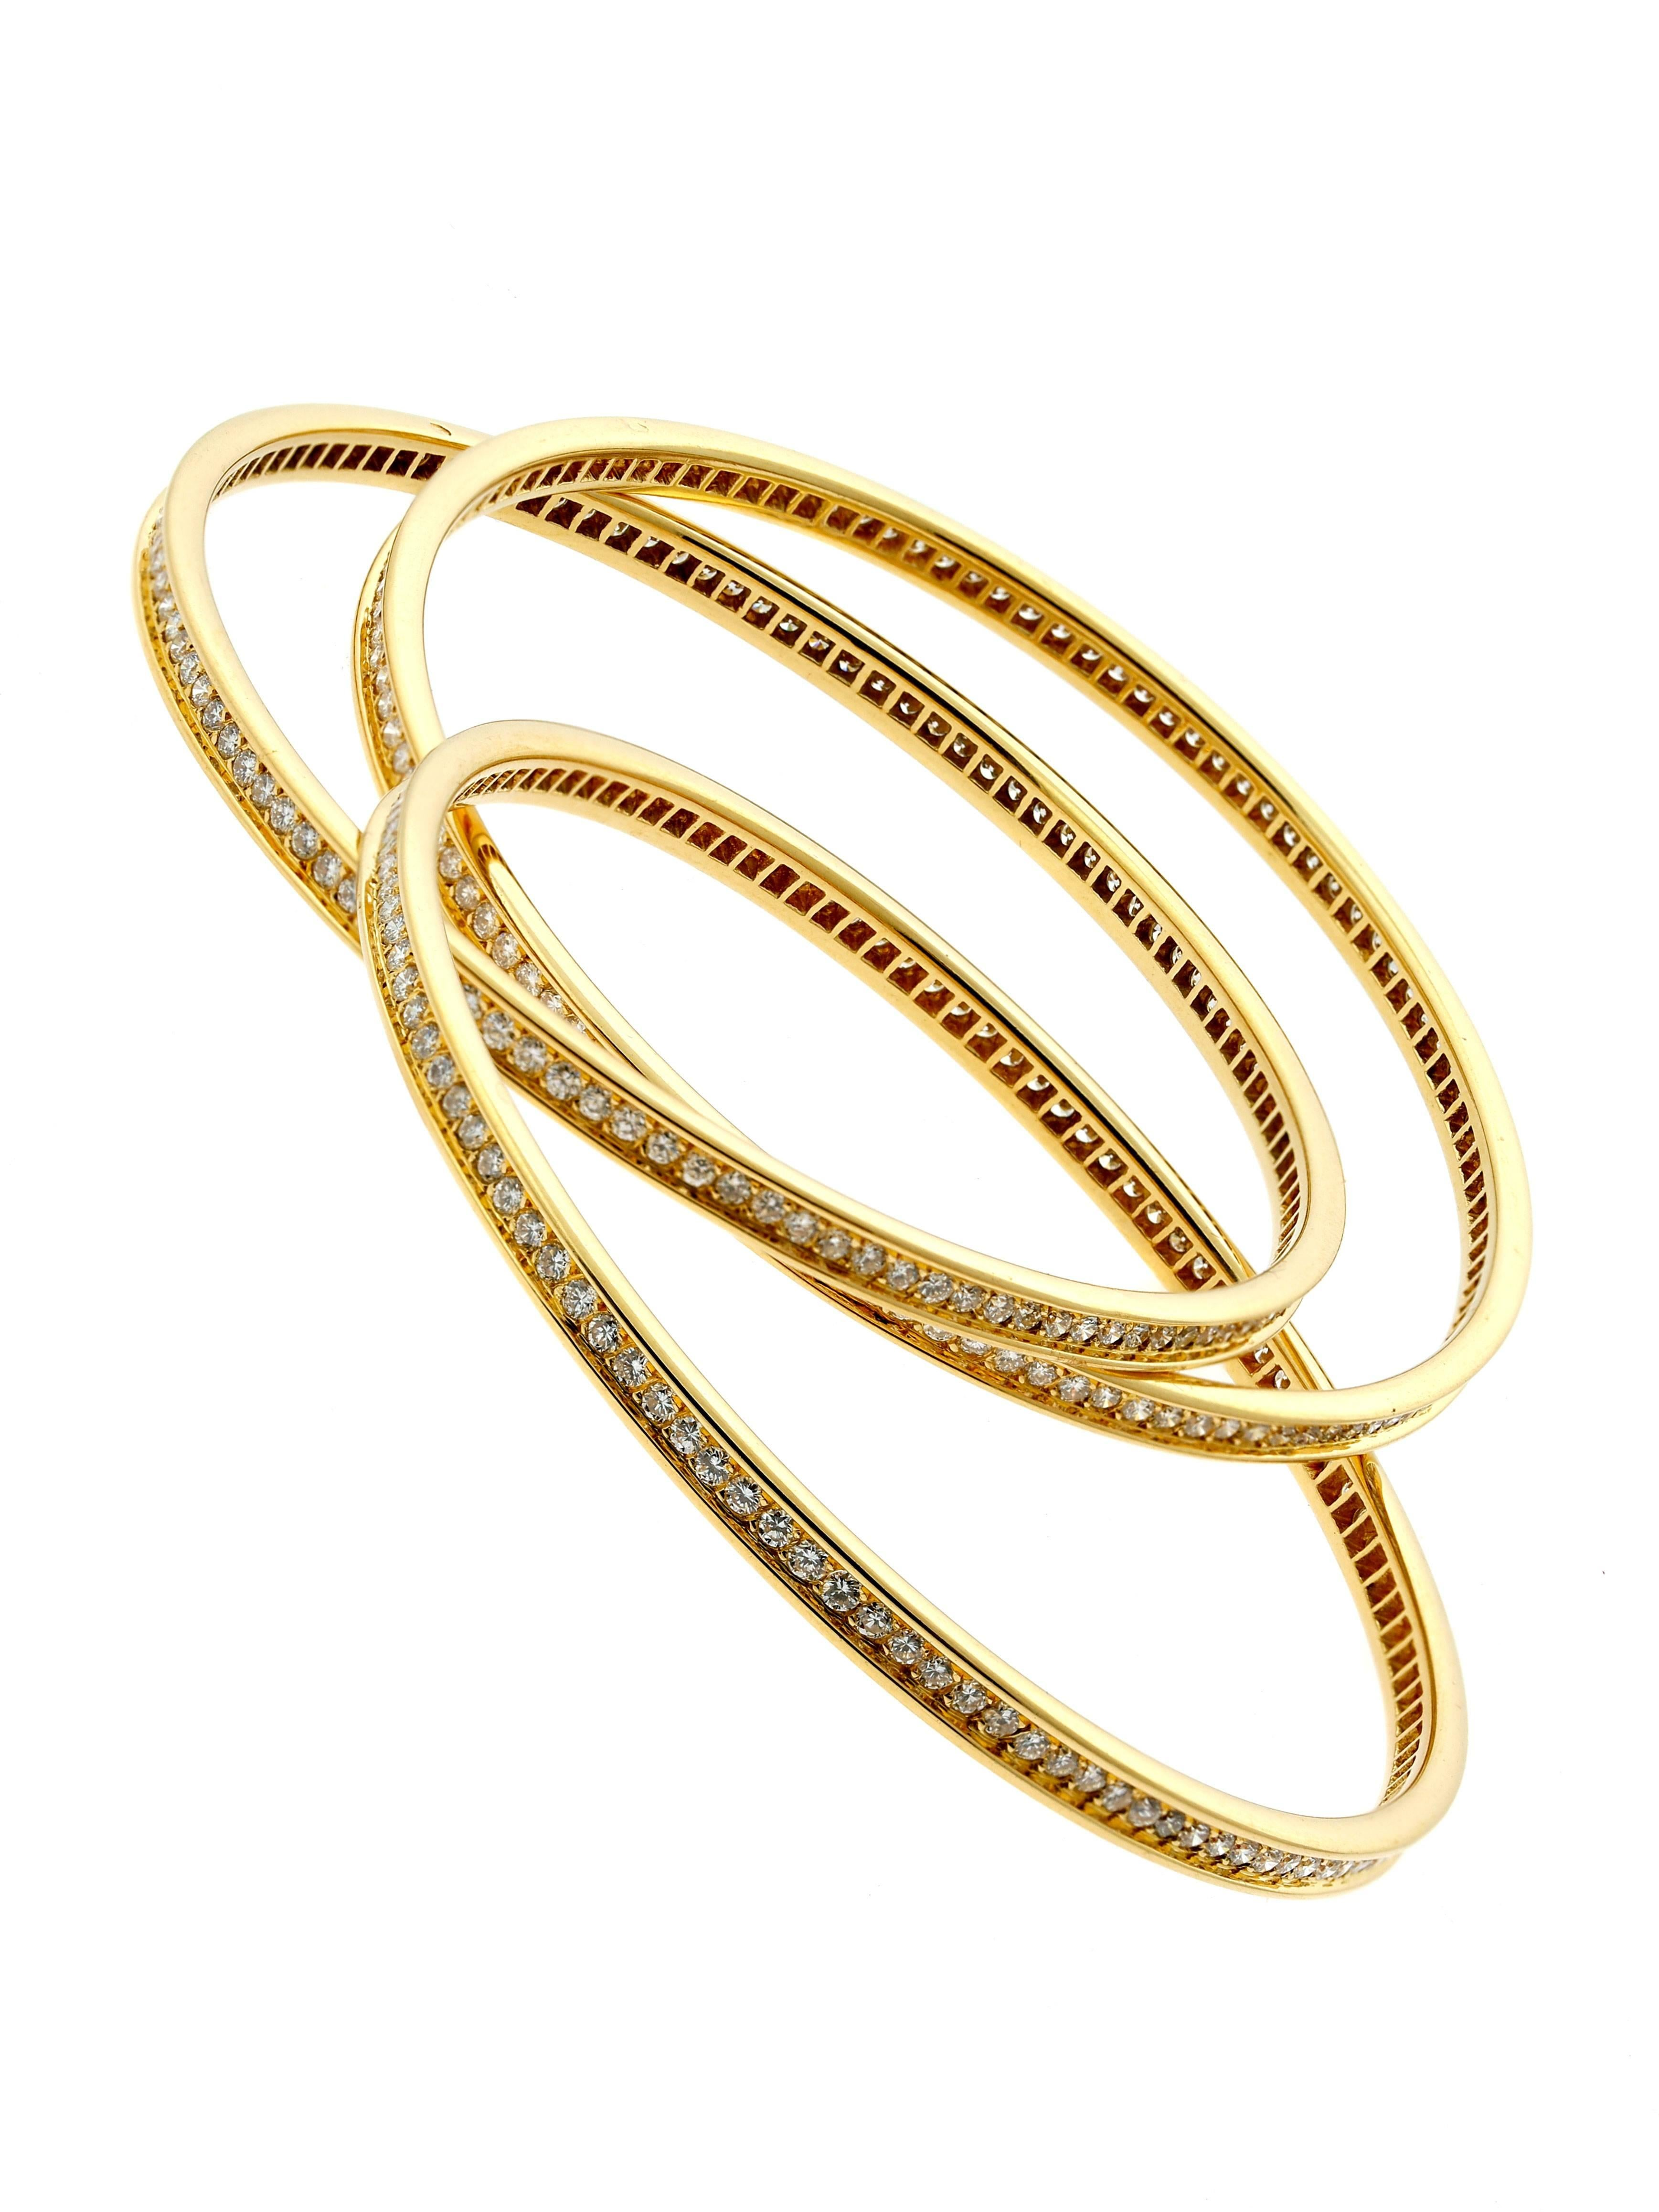 bangles gold kolkata shop jeweller manik chand jewellery